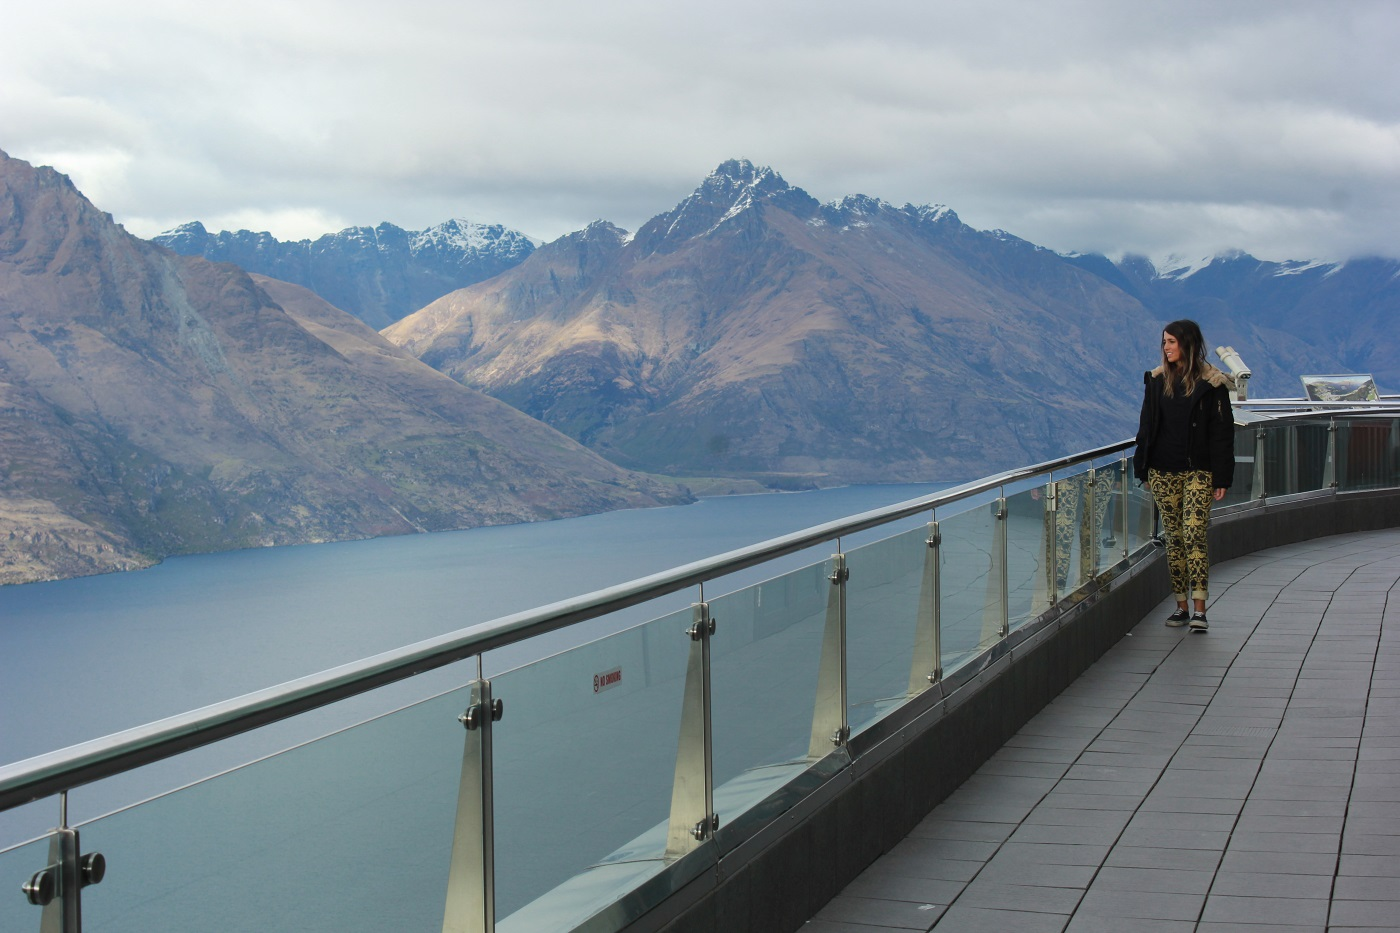 Skyline Queenstown (Foto: Tati Sisti)